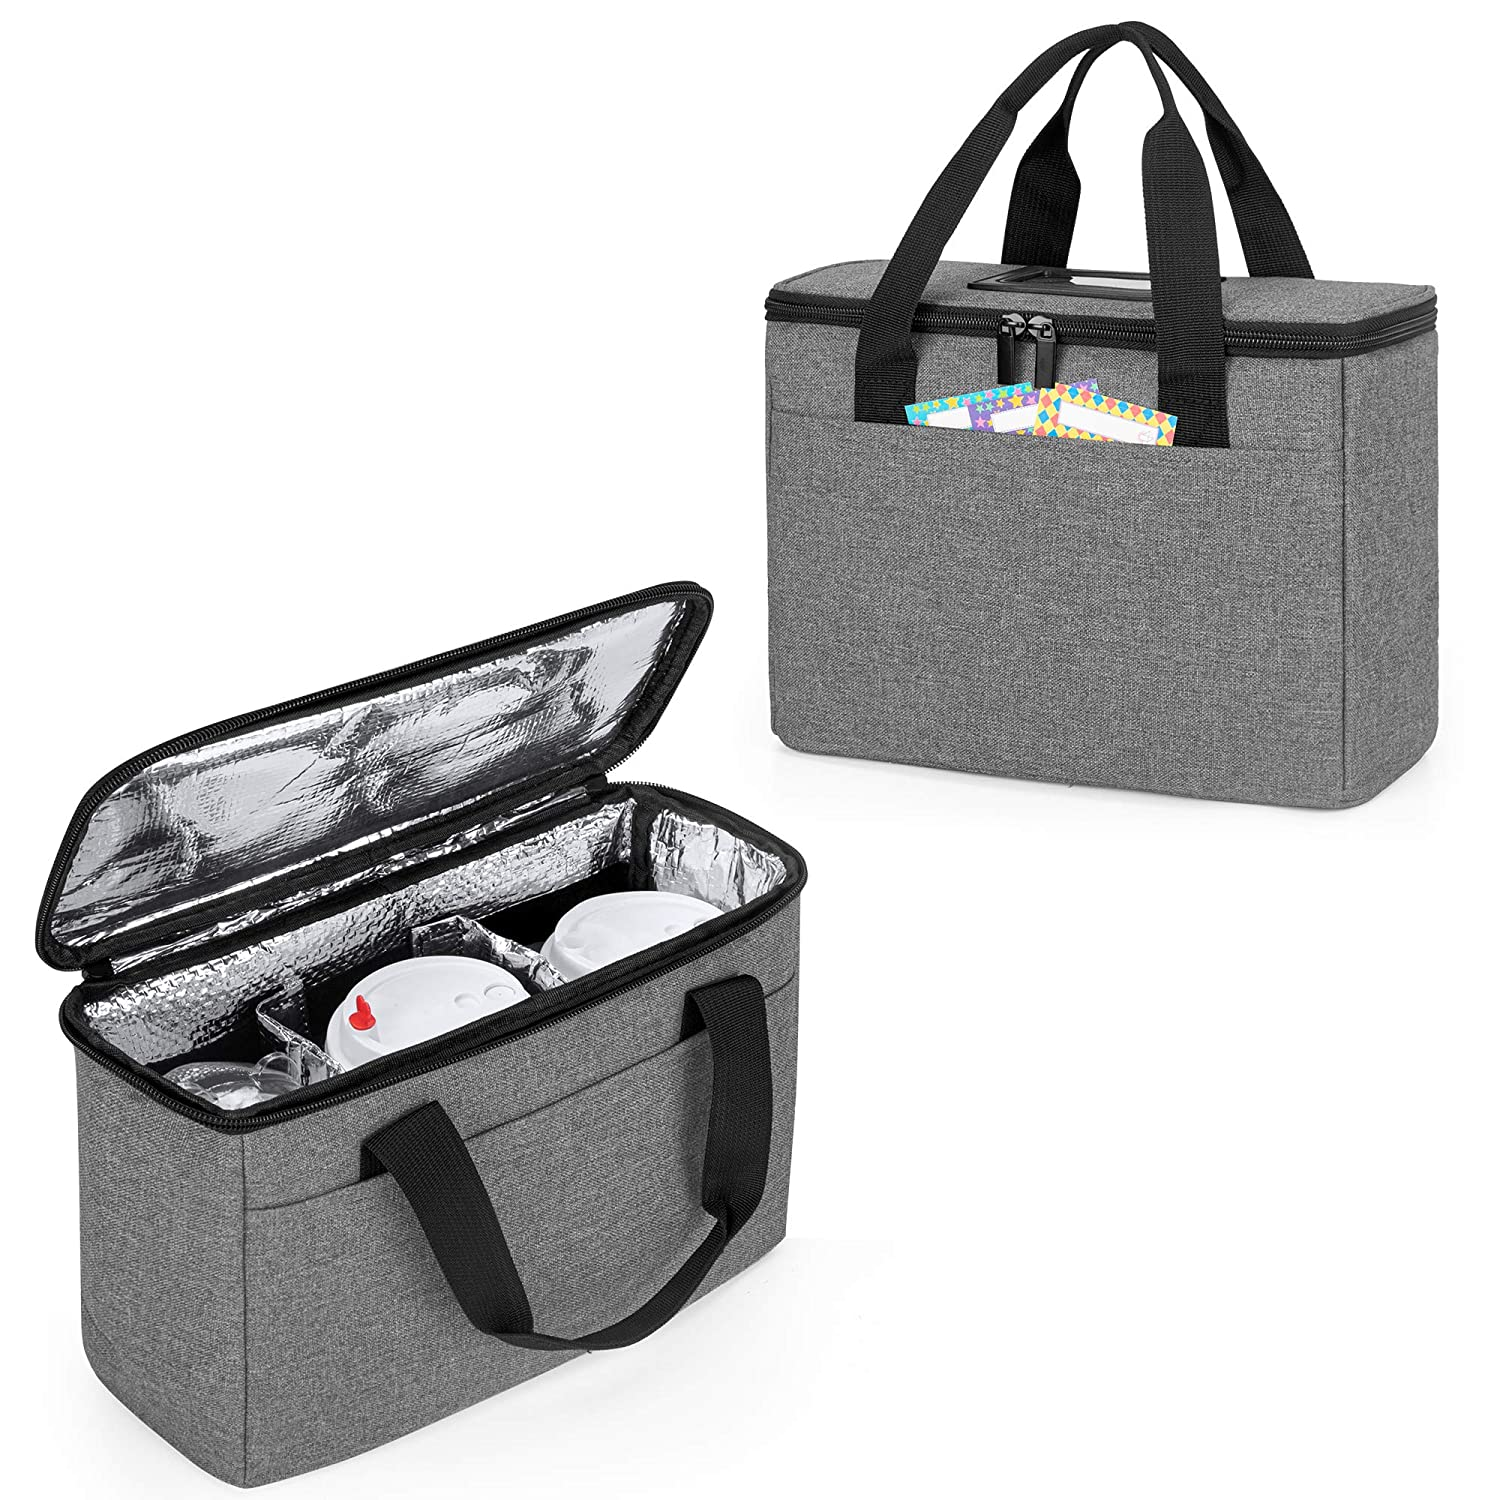 Trunab Reusable 3 Cups Drink Carrier for Delivery with Adjustable Dividers, Insulated Drink Caddy Holder Bag for Take Out, Beverages Carrier Tote with Handle for Outdoors, Grey